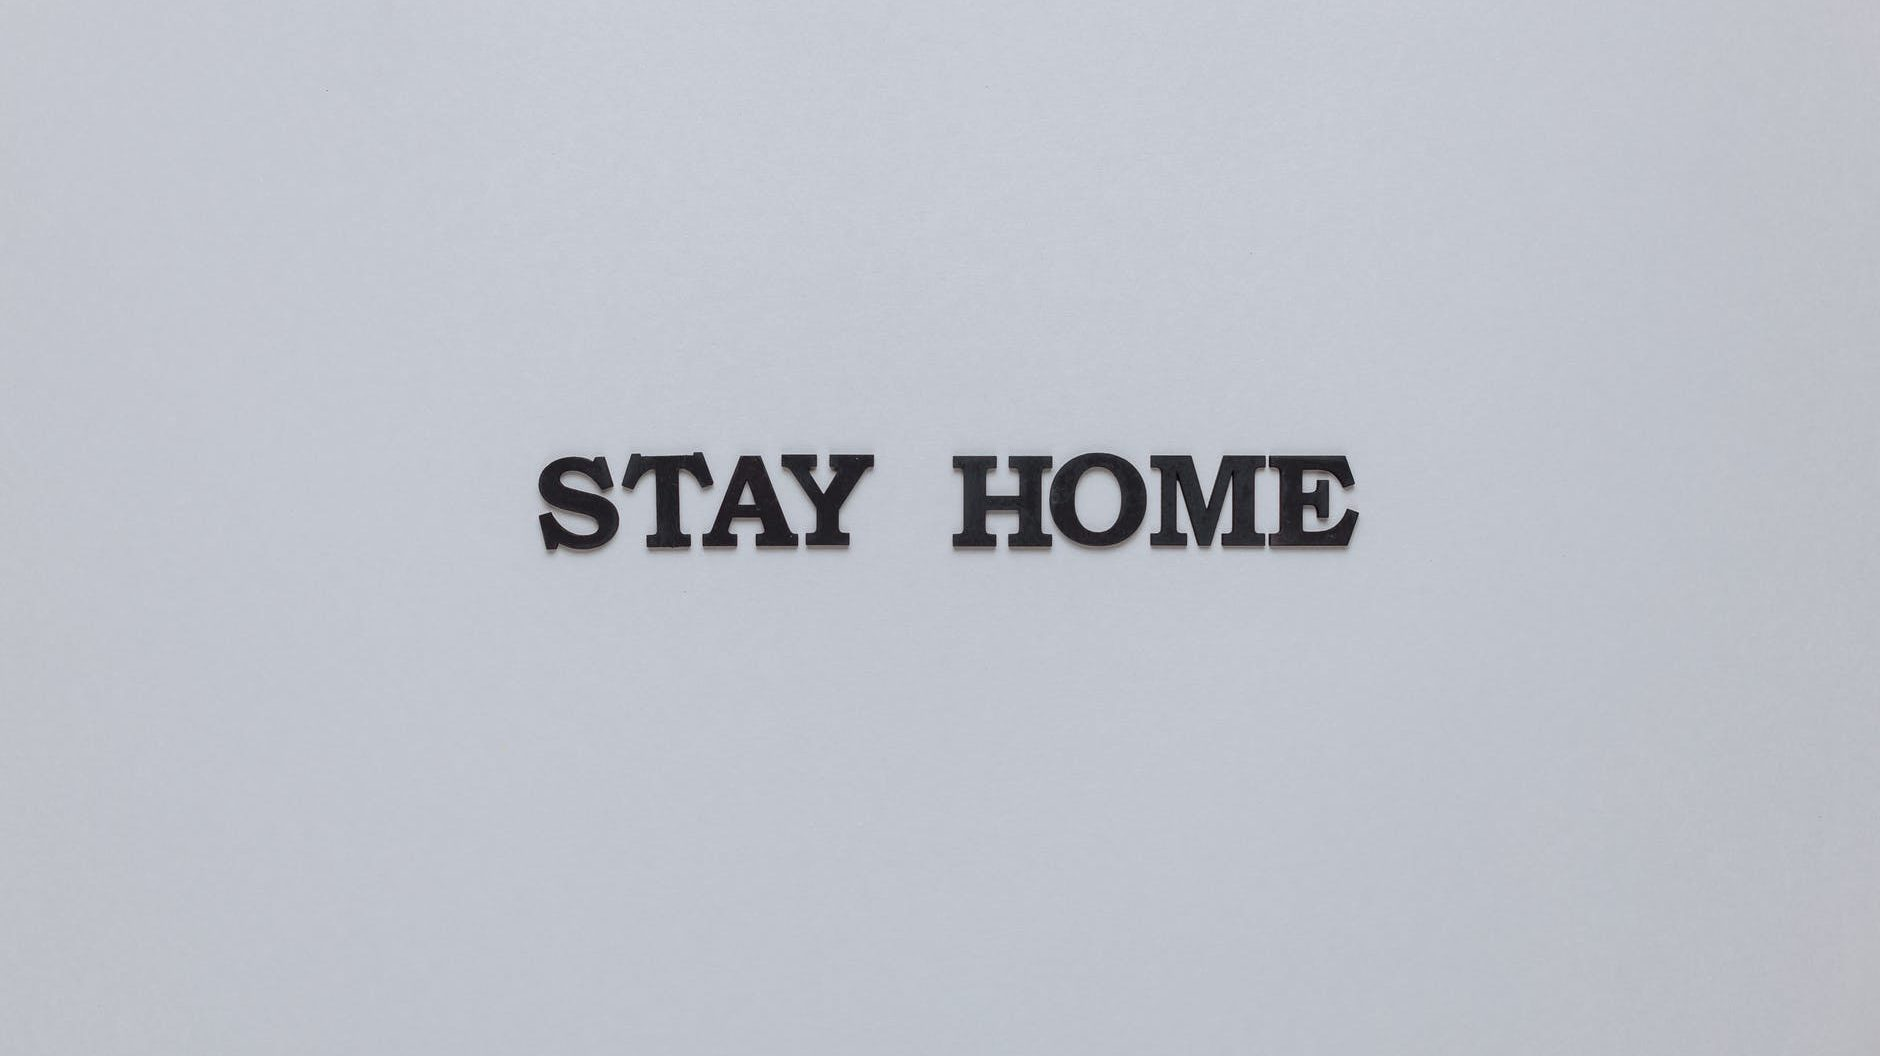 stay home slogan on gray background